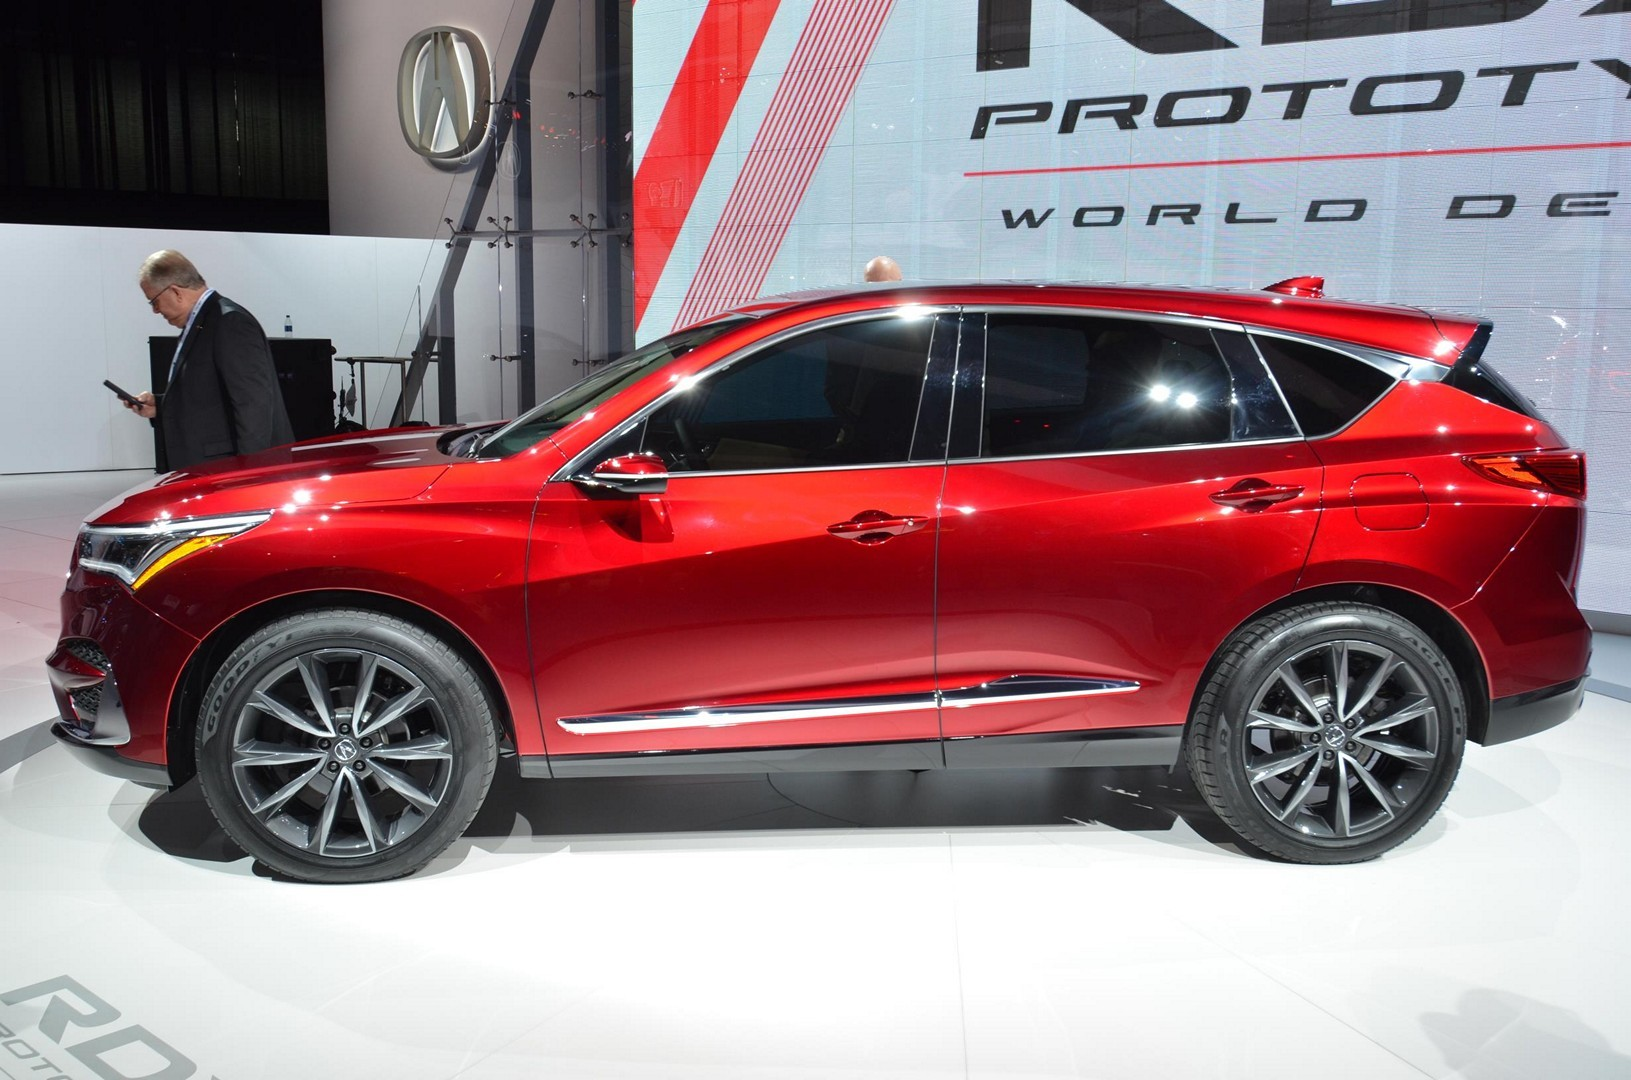 2019 Acura Rdx Prototype Looks Good From The Front In